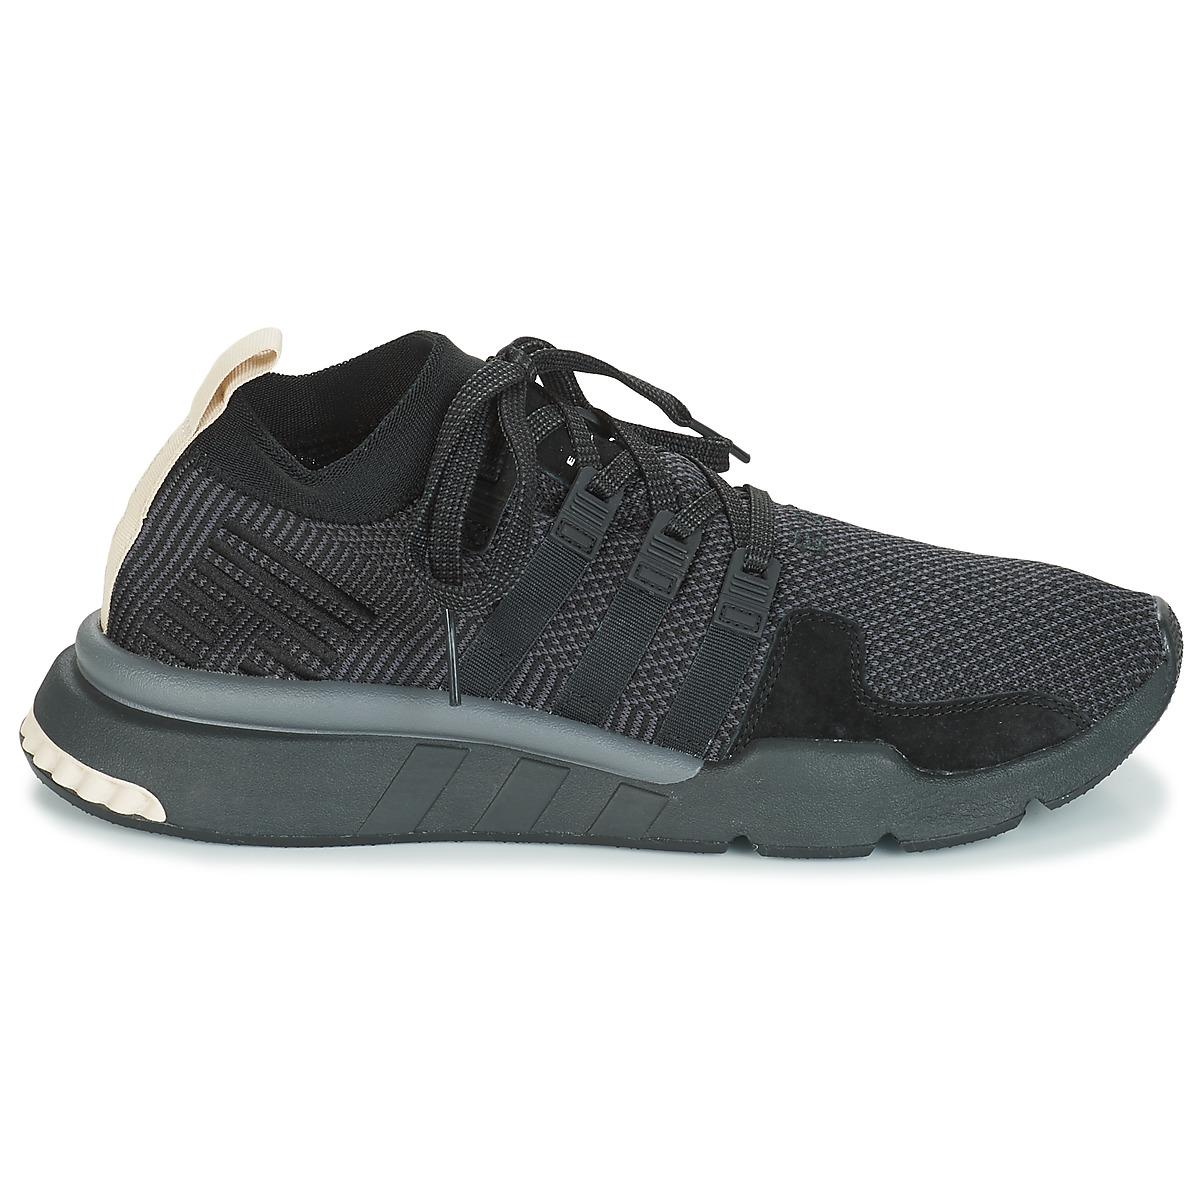 huge discount 045b7 b9098 Adidas - Black Eqt Support Mid Adv Shoes (trainers) for Men - Lyst. View  fullscreen